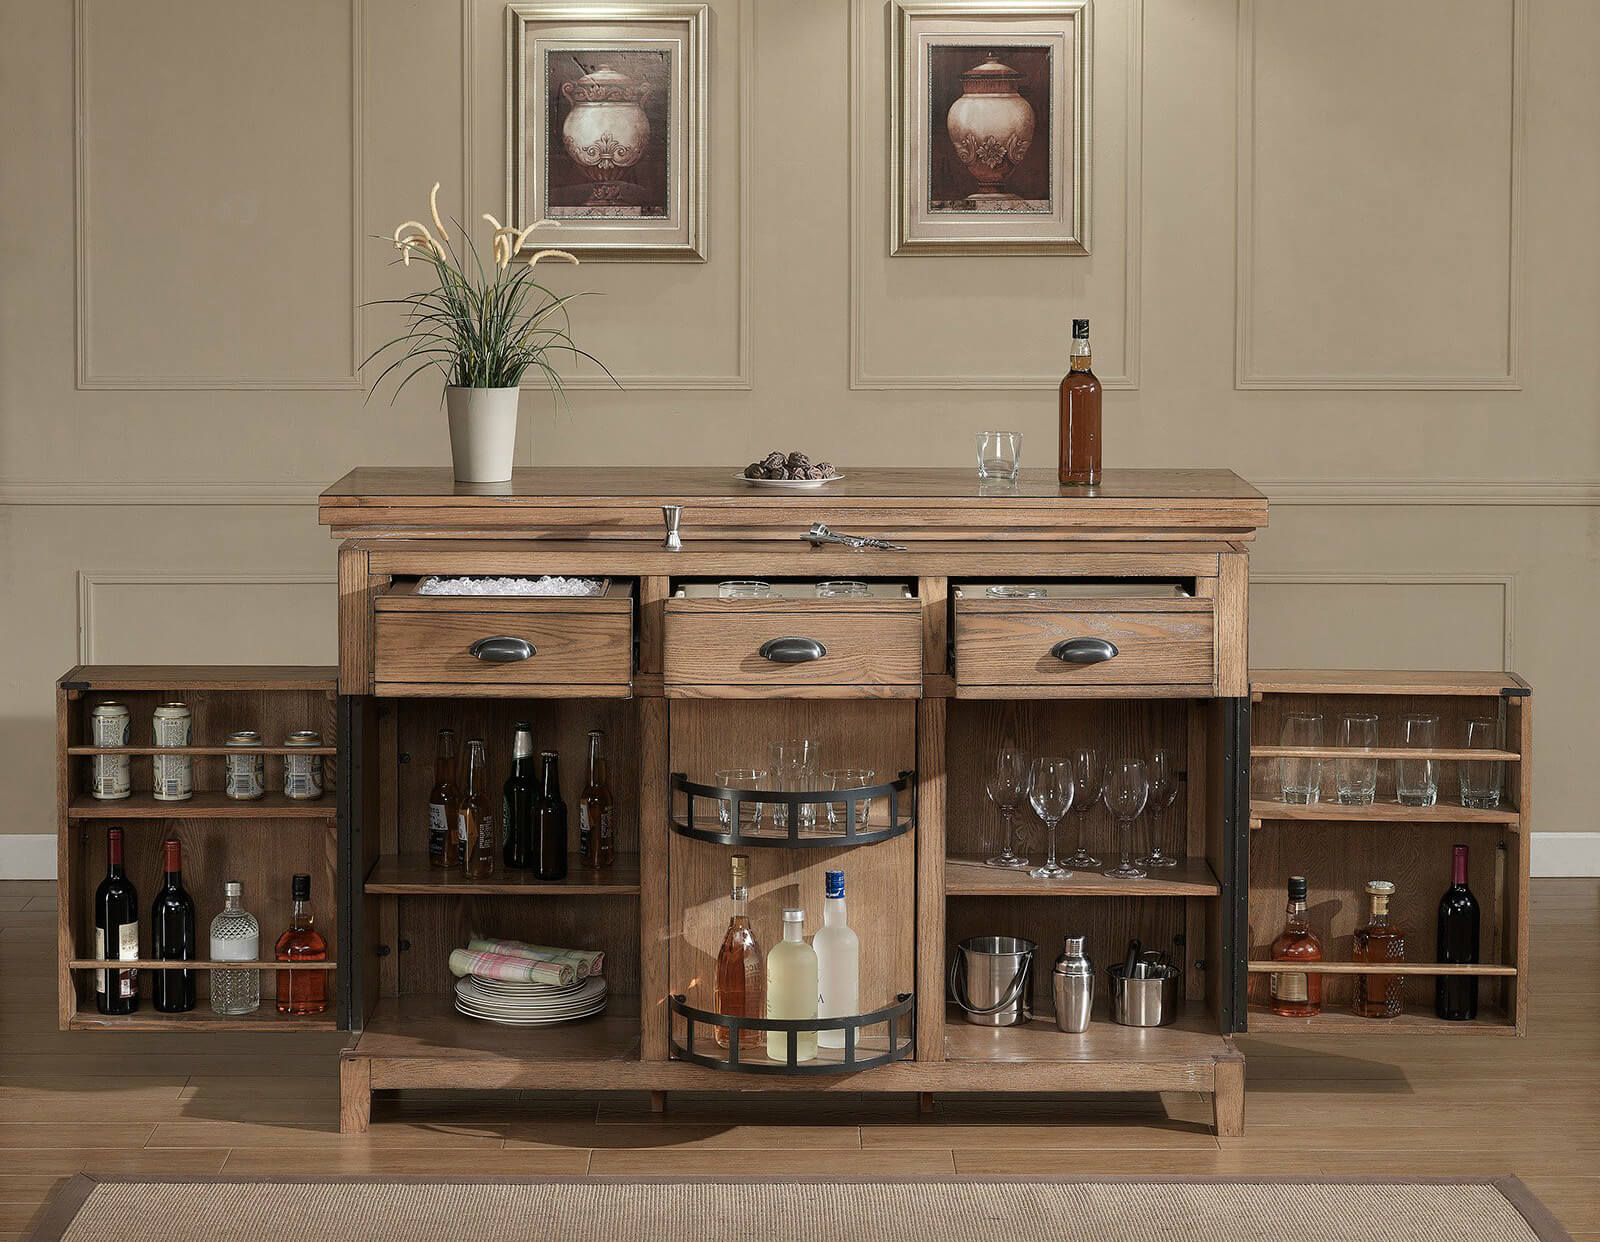 Delightful As You Can See, The Amount Of Storage In This Rustic Home Bar Cabinet Unit